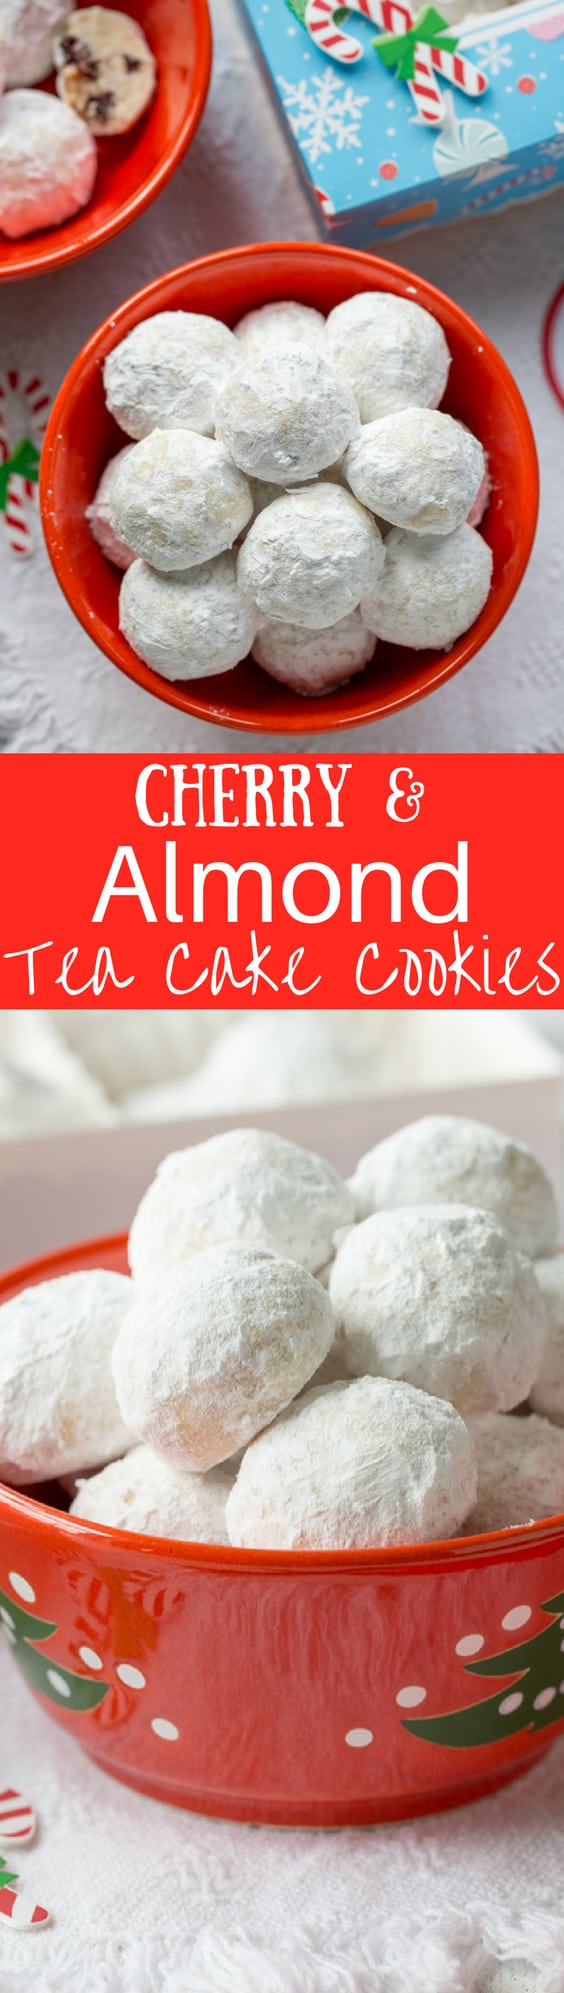 Cherry Almond Tea Cake Cookies ~ a tender bite-sized cookie loaded with almond flavor and little pieces of dried sour cherries. An easy and delicious cookie for your holiday baking! www.savingdessert.com